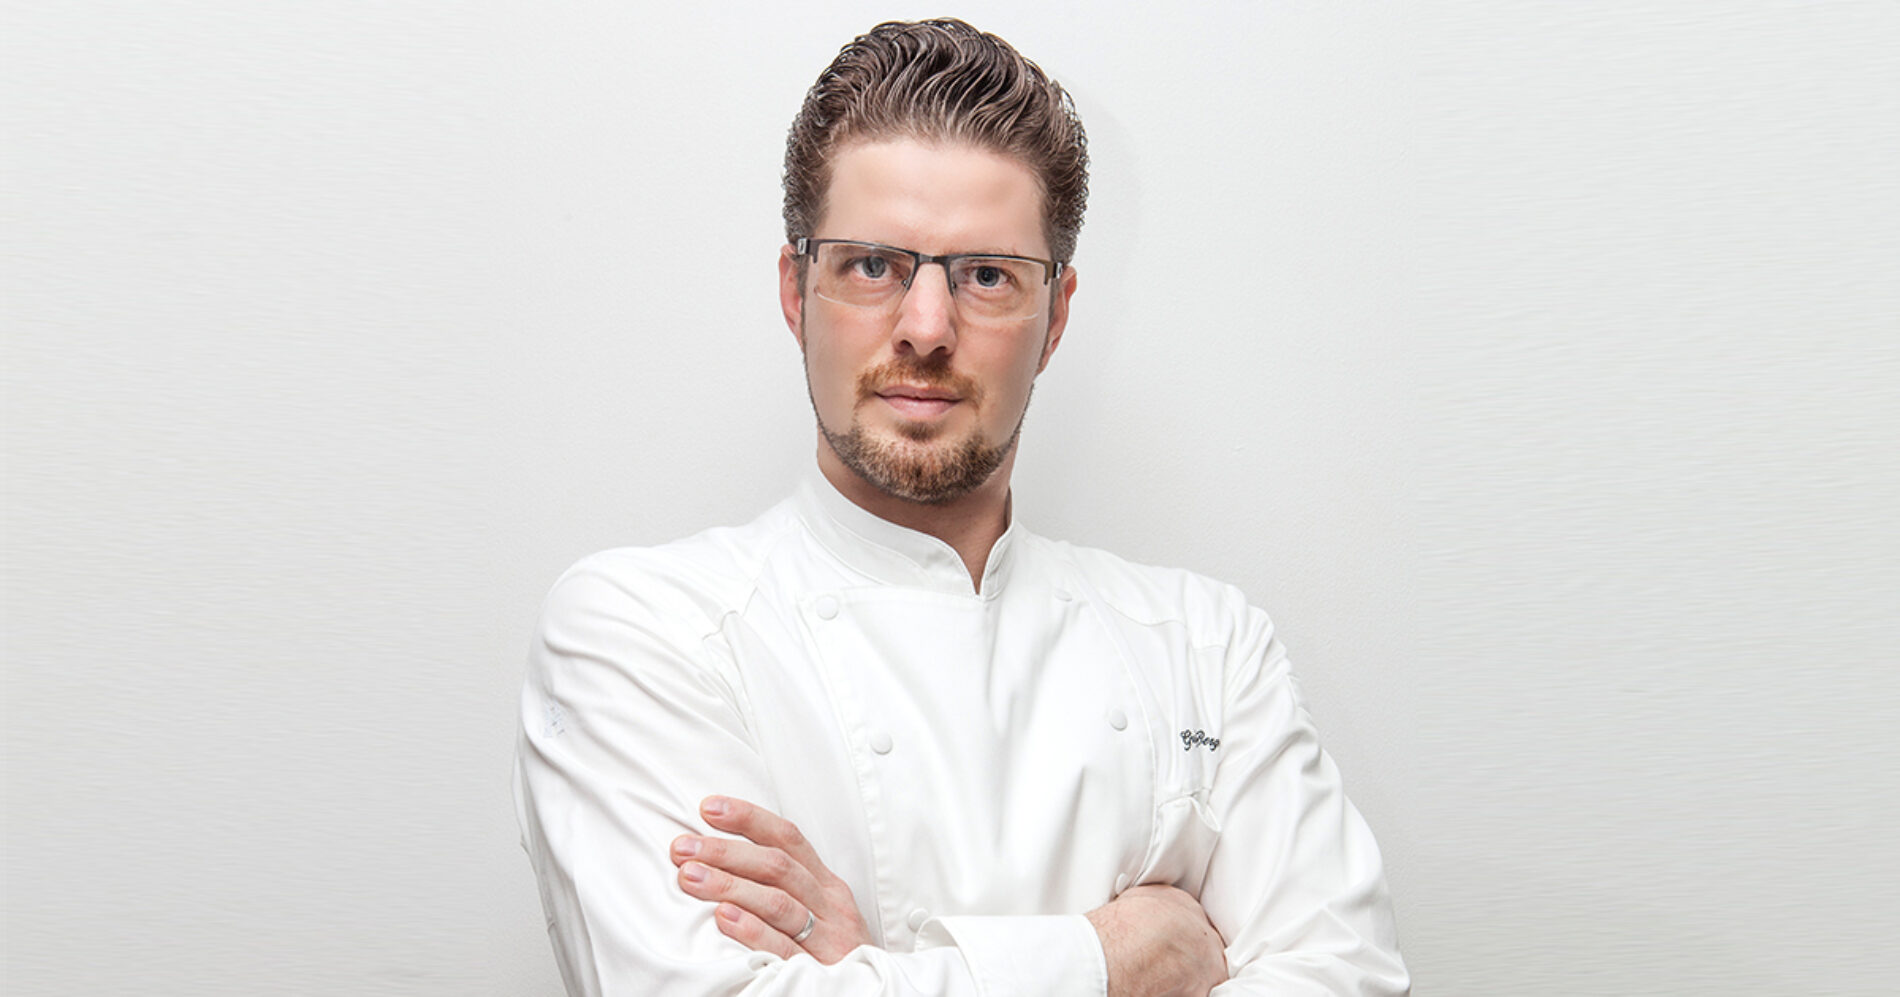 Recipe for success: Grégoire Berger reflects on his international accolades